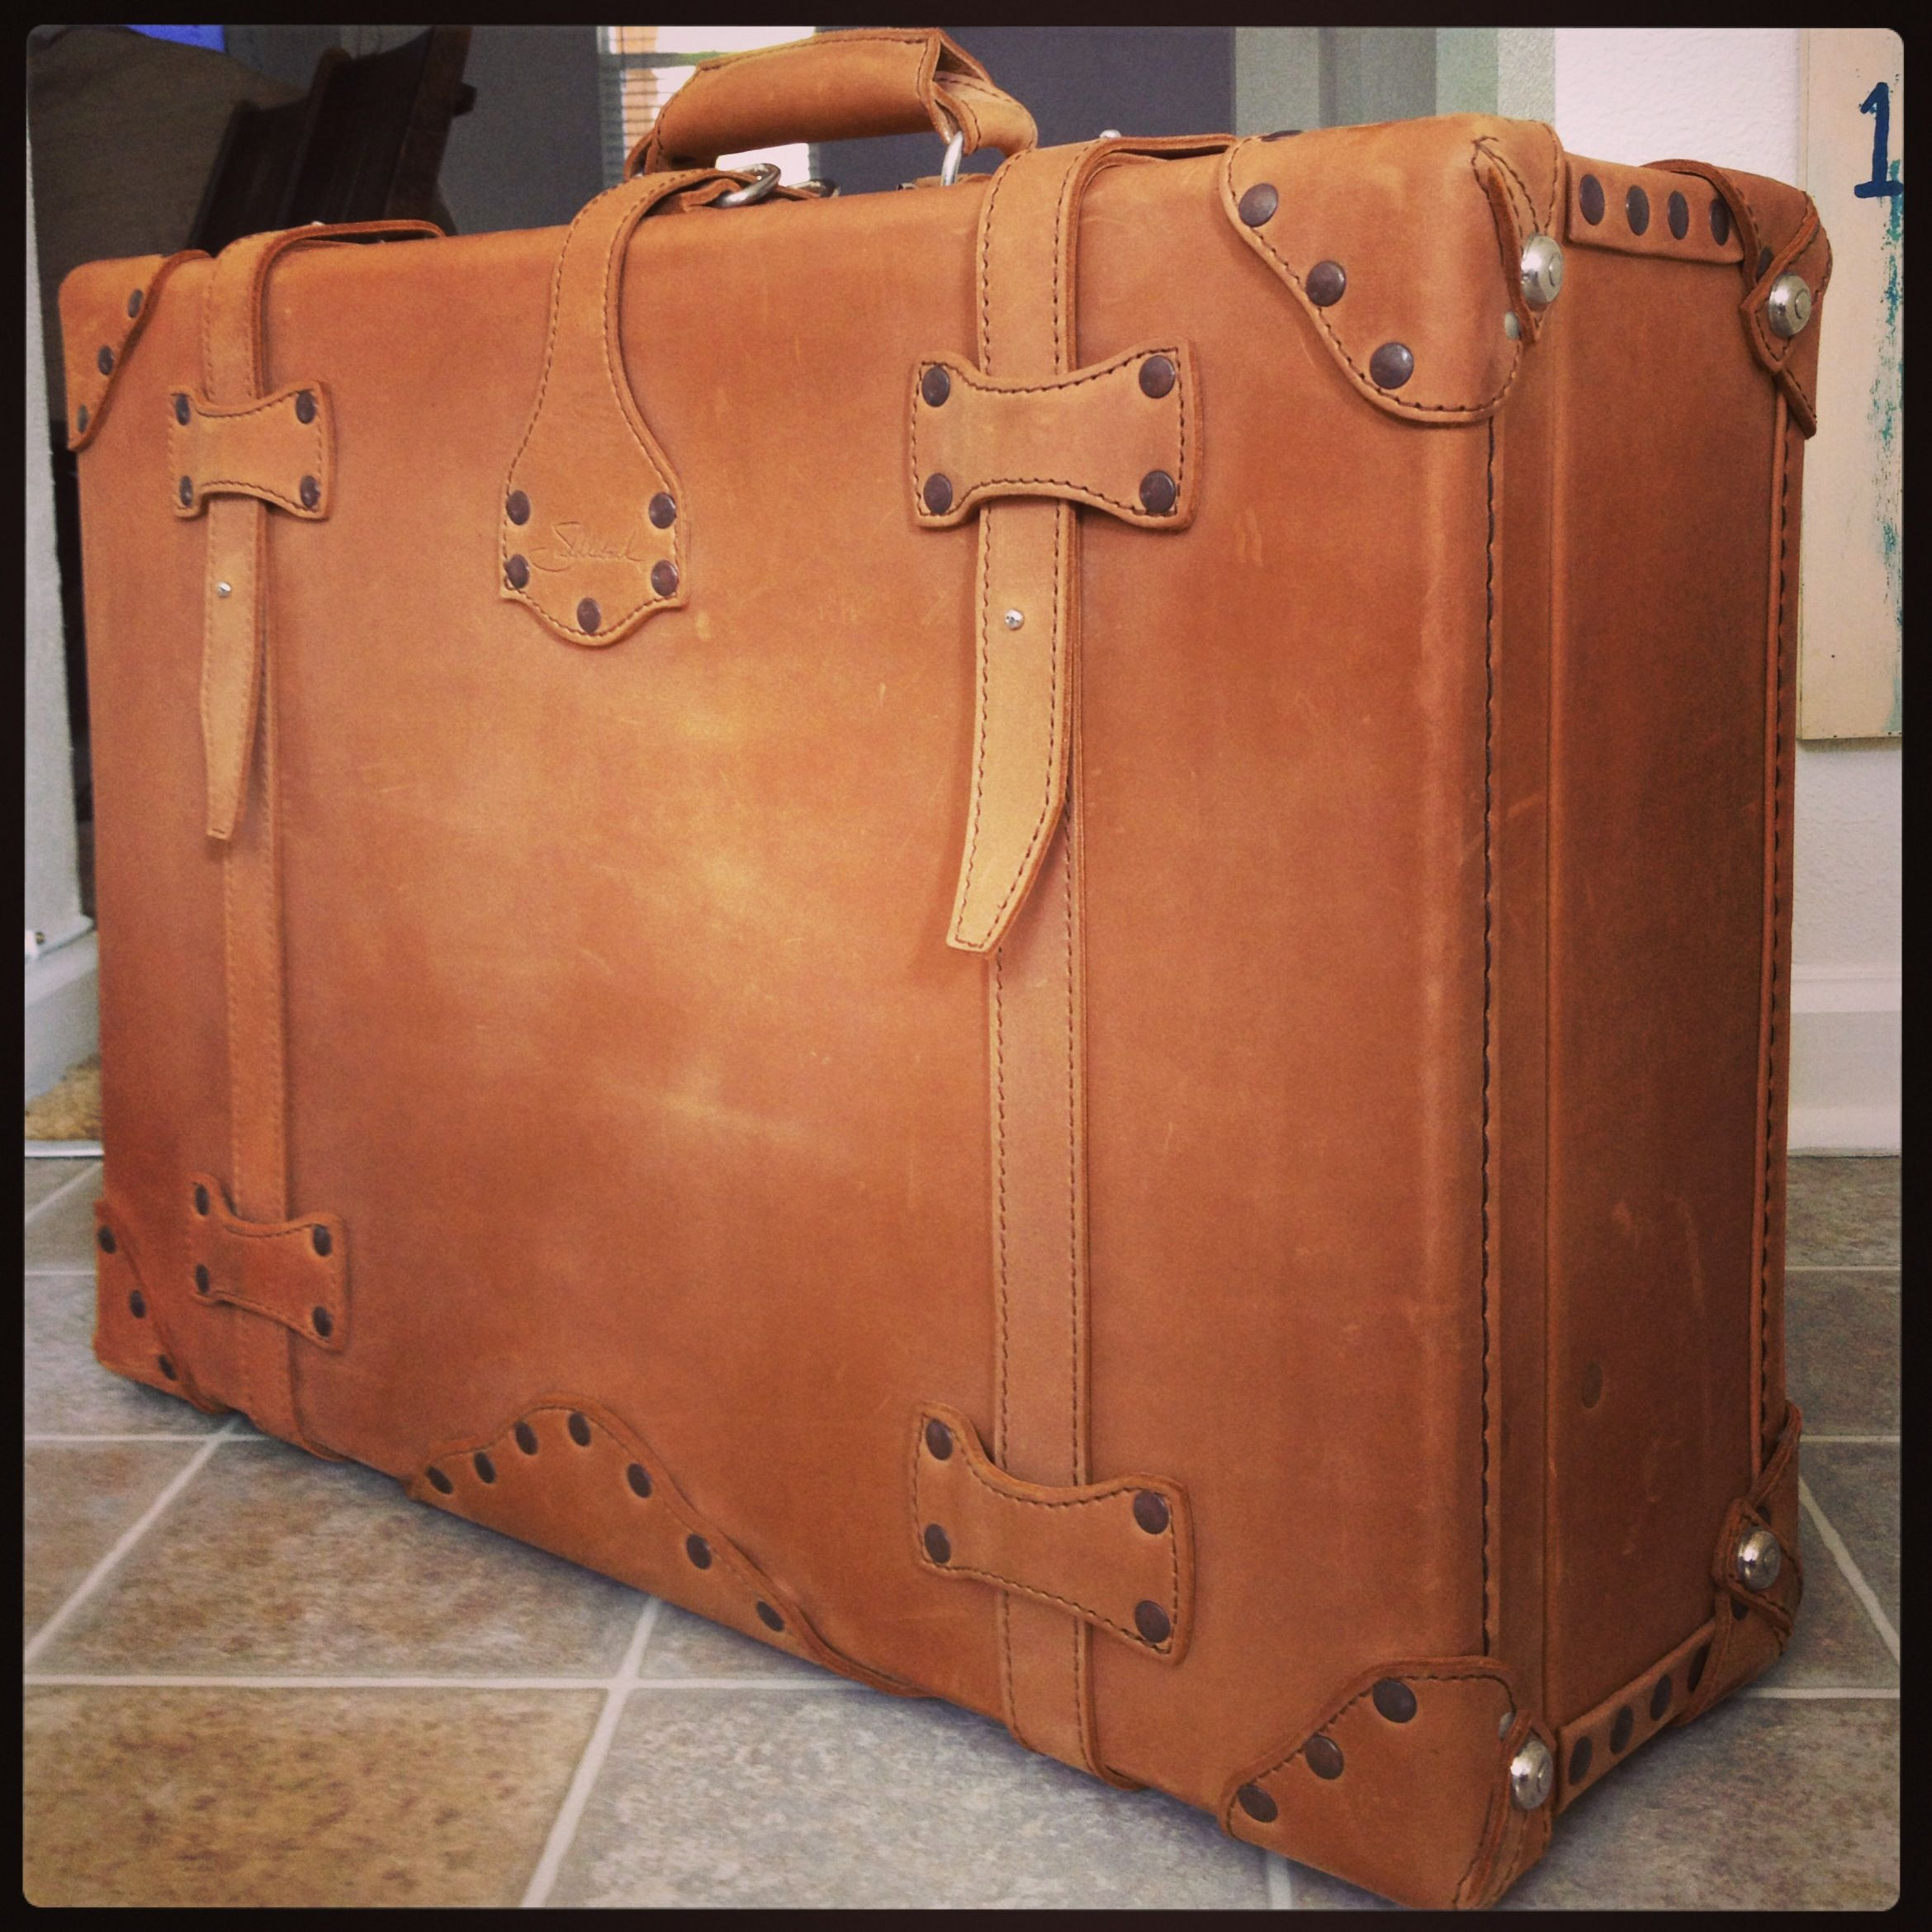 Globe-Trotter As someone that collects vintage suitcases, I find ...